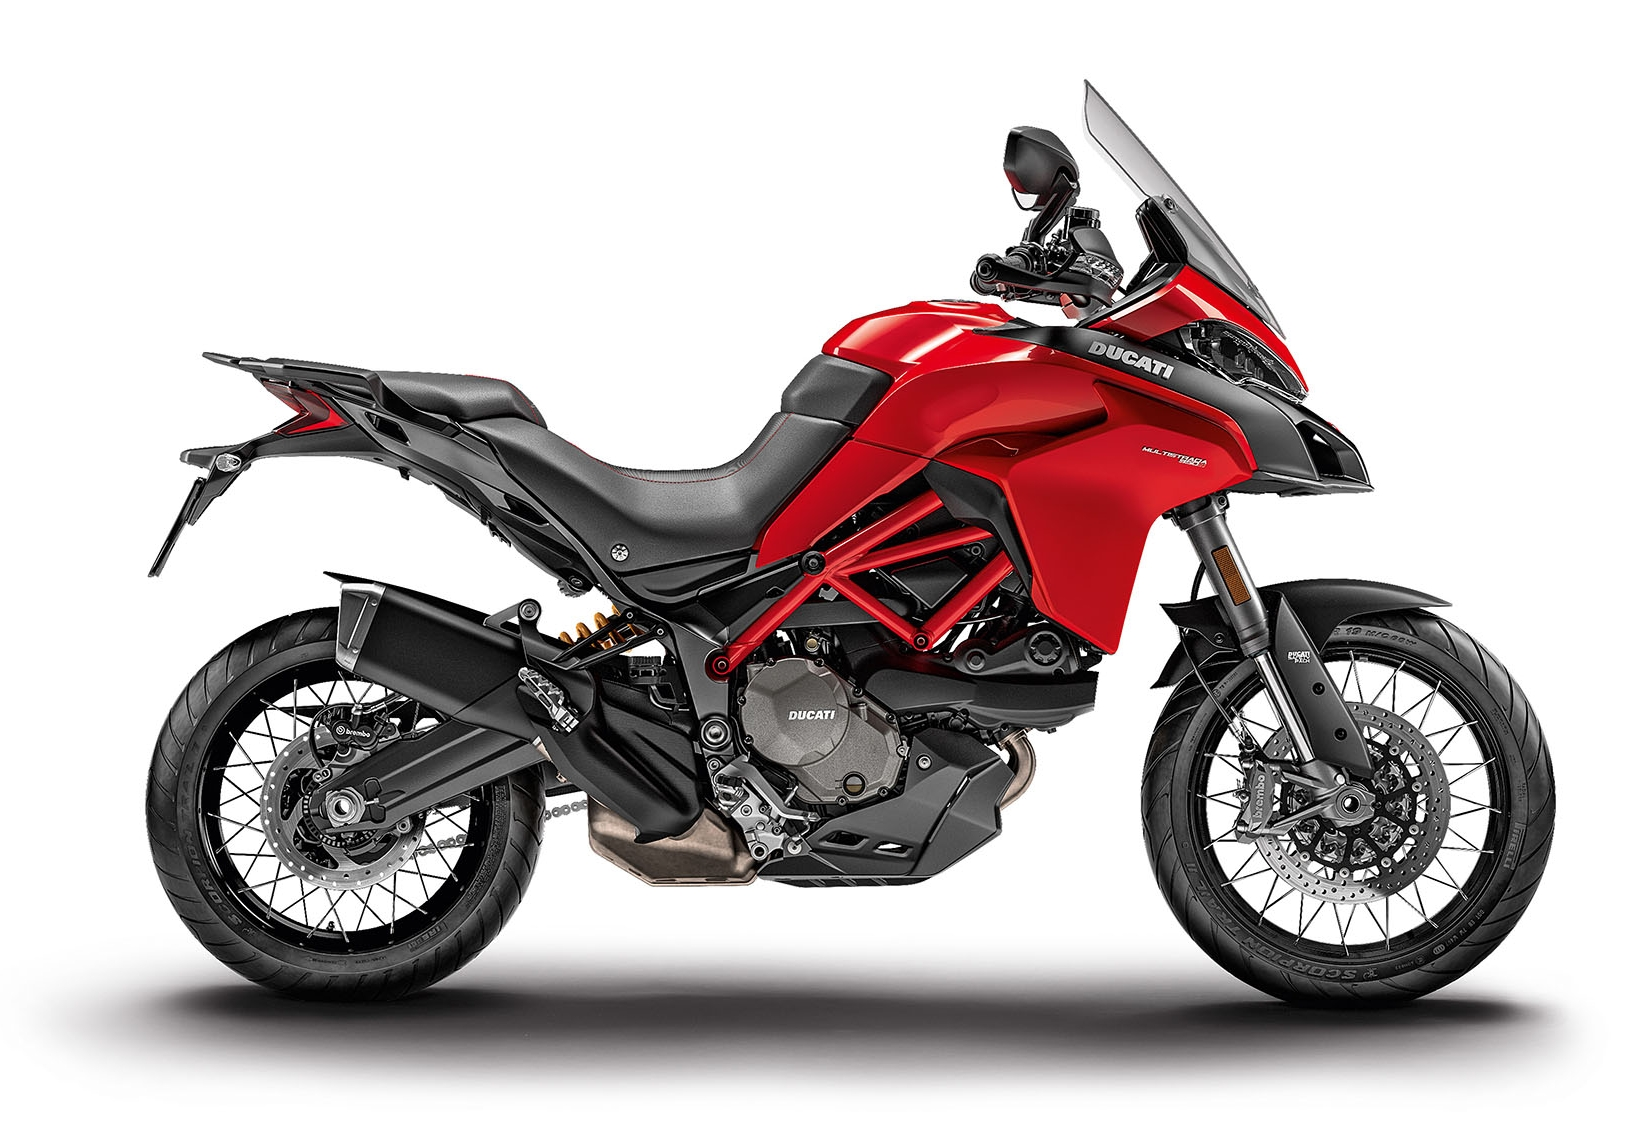 Multistrada 950 S Shown in Red with tubeless wheels/tires